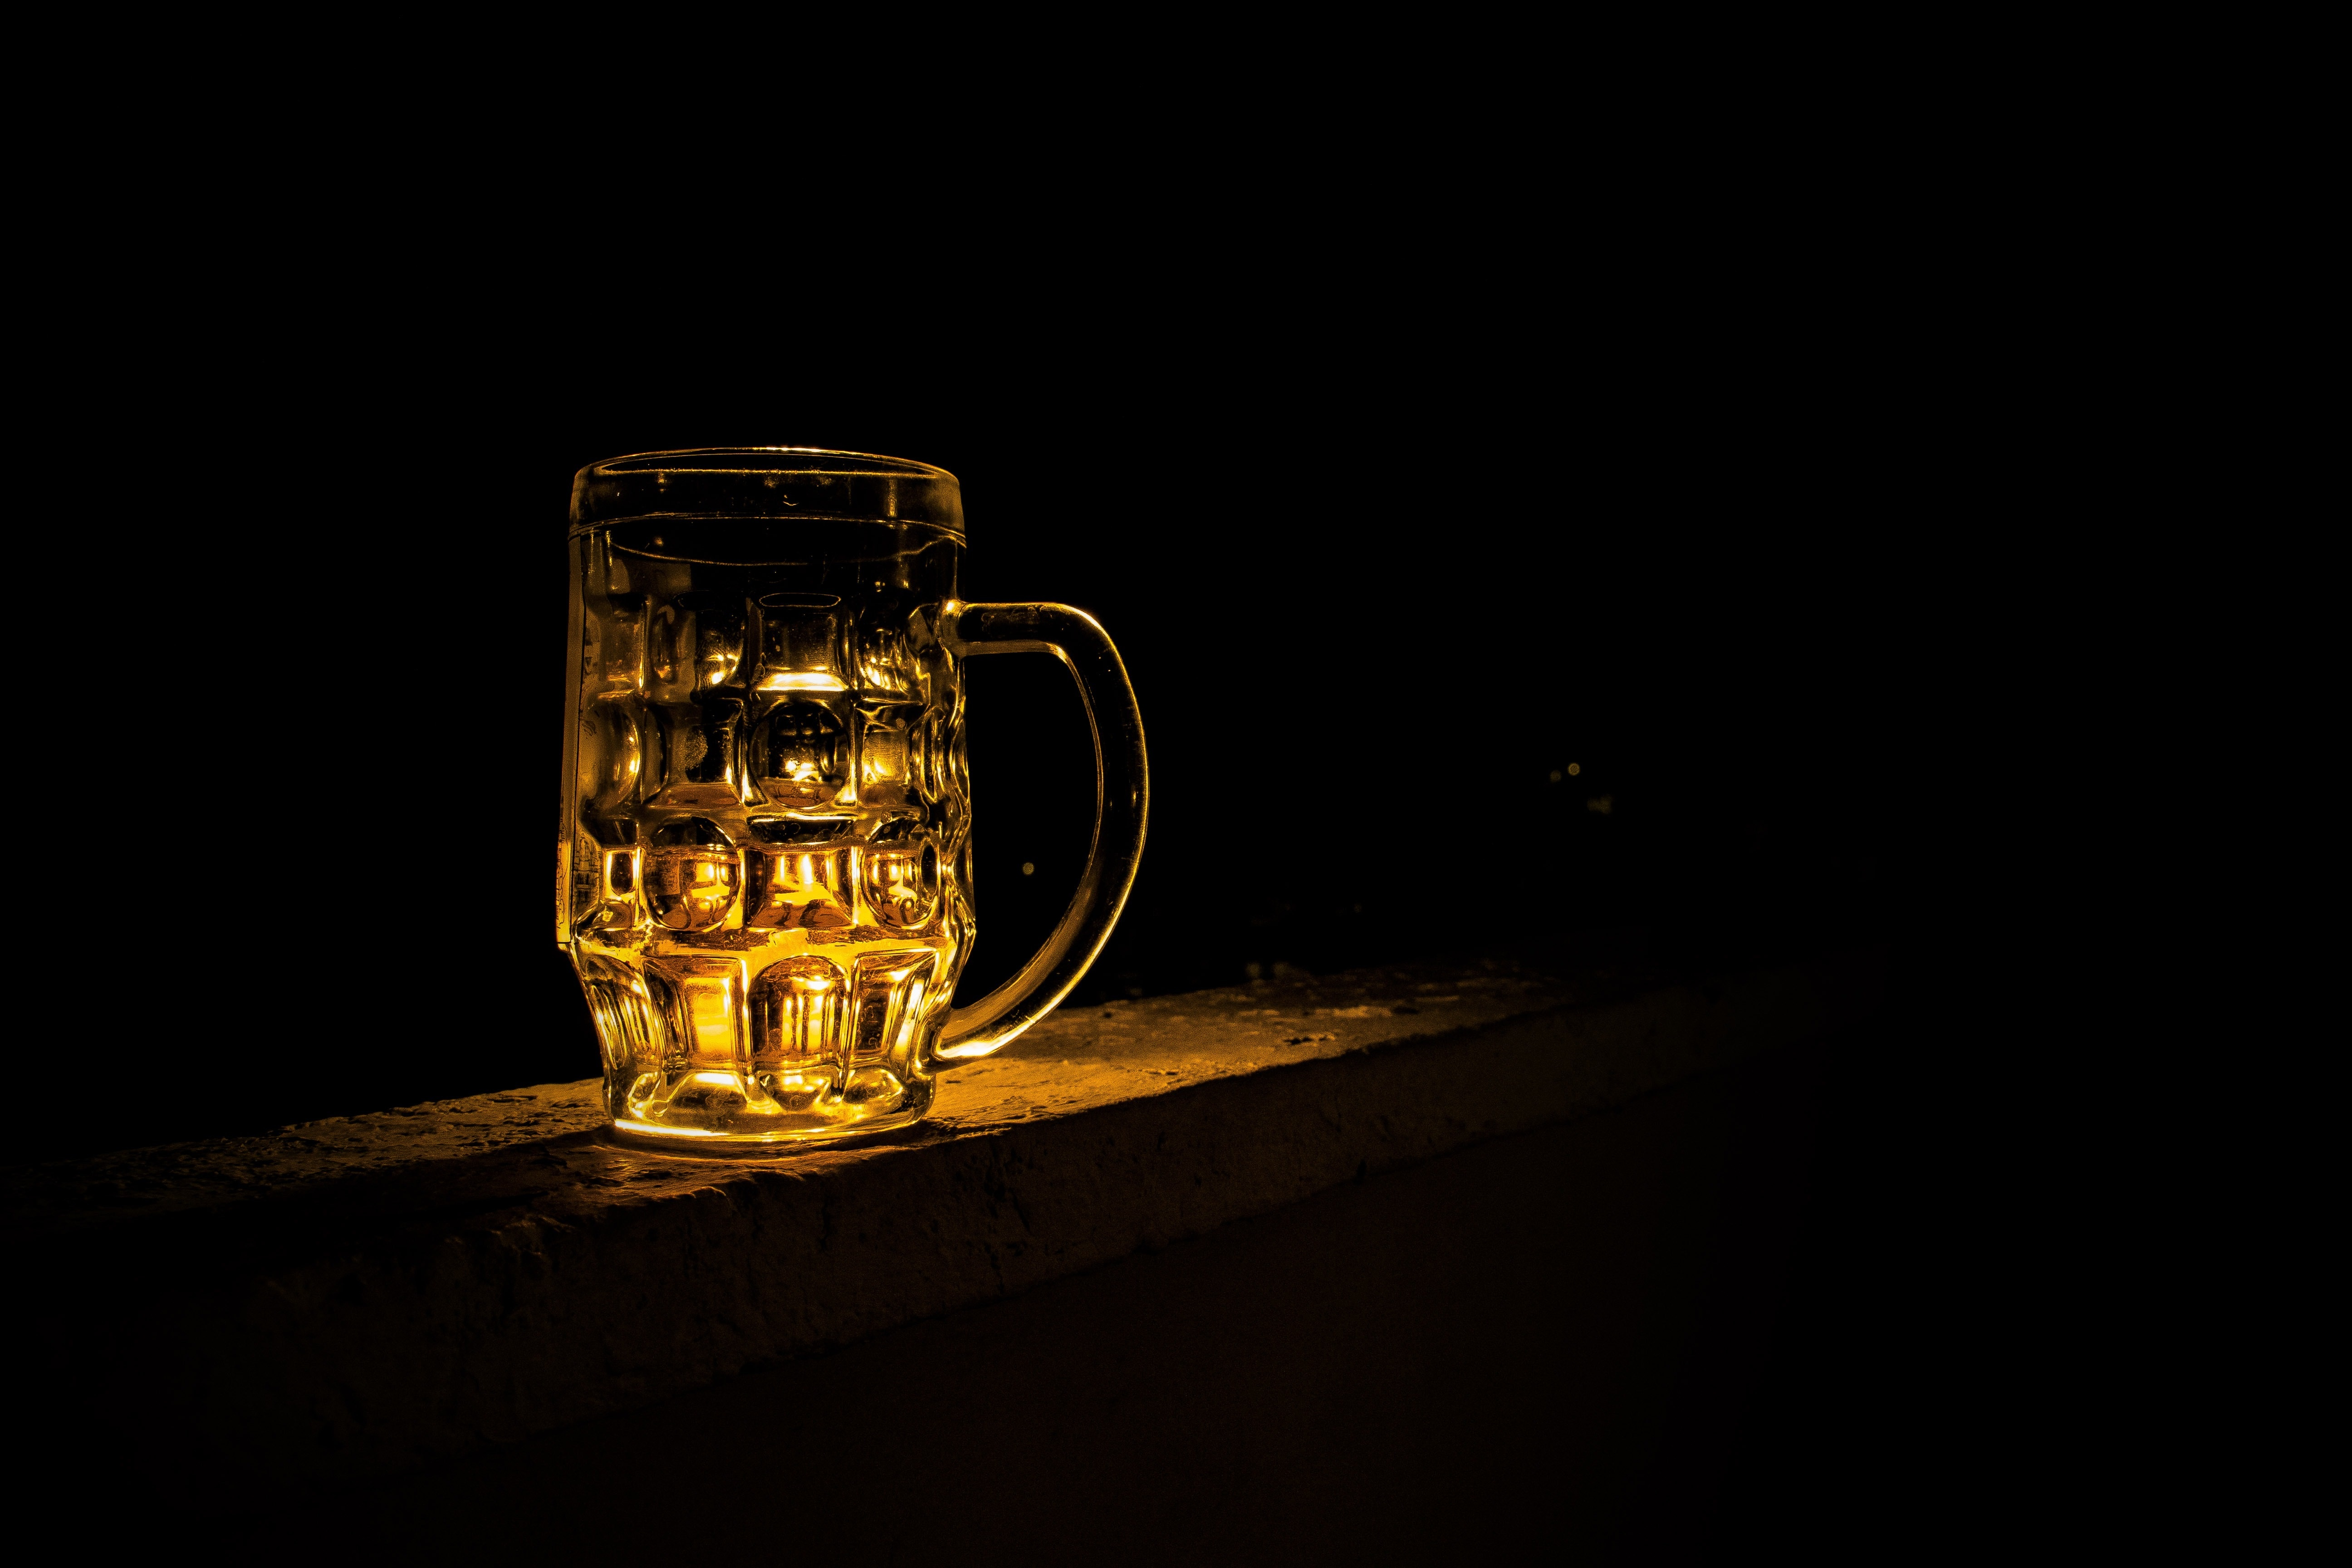 flipped beer-a-pint-cup-alcohol-65210.jpg